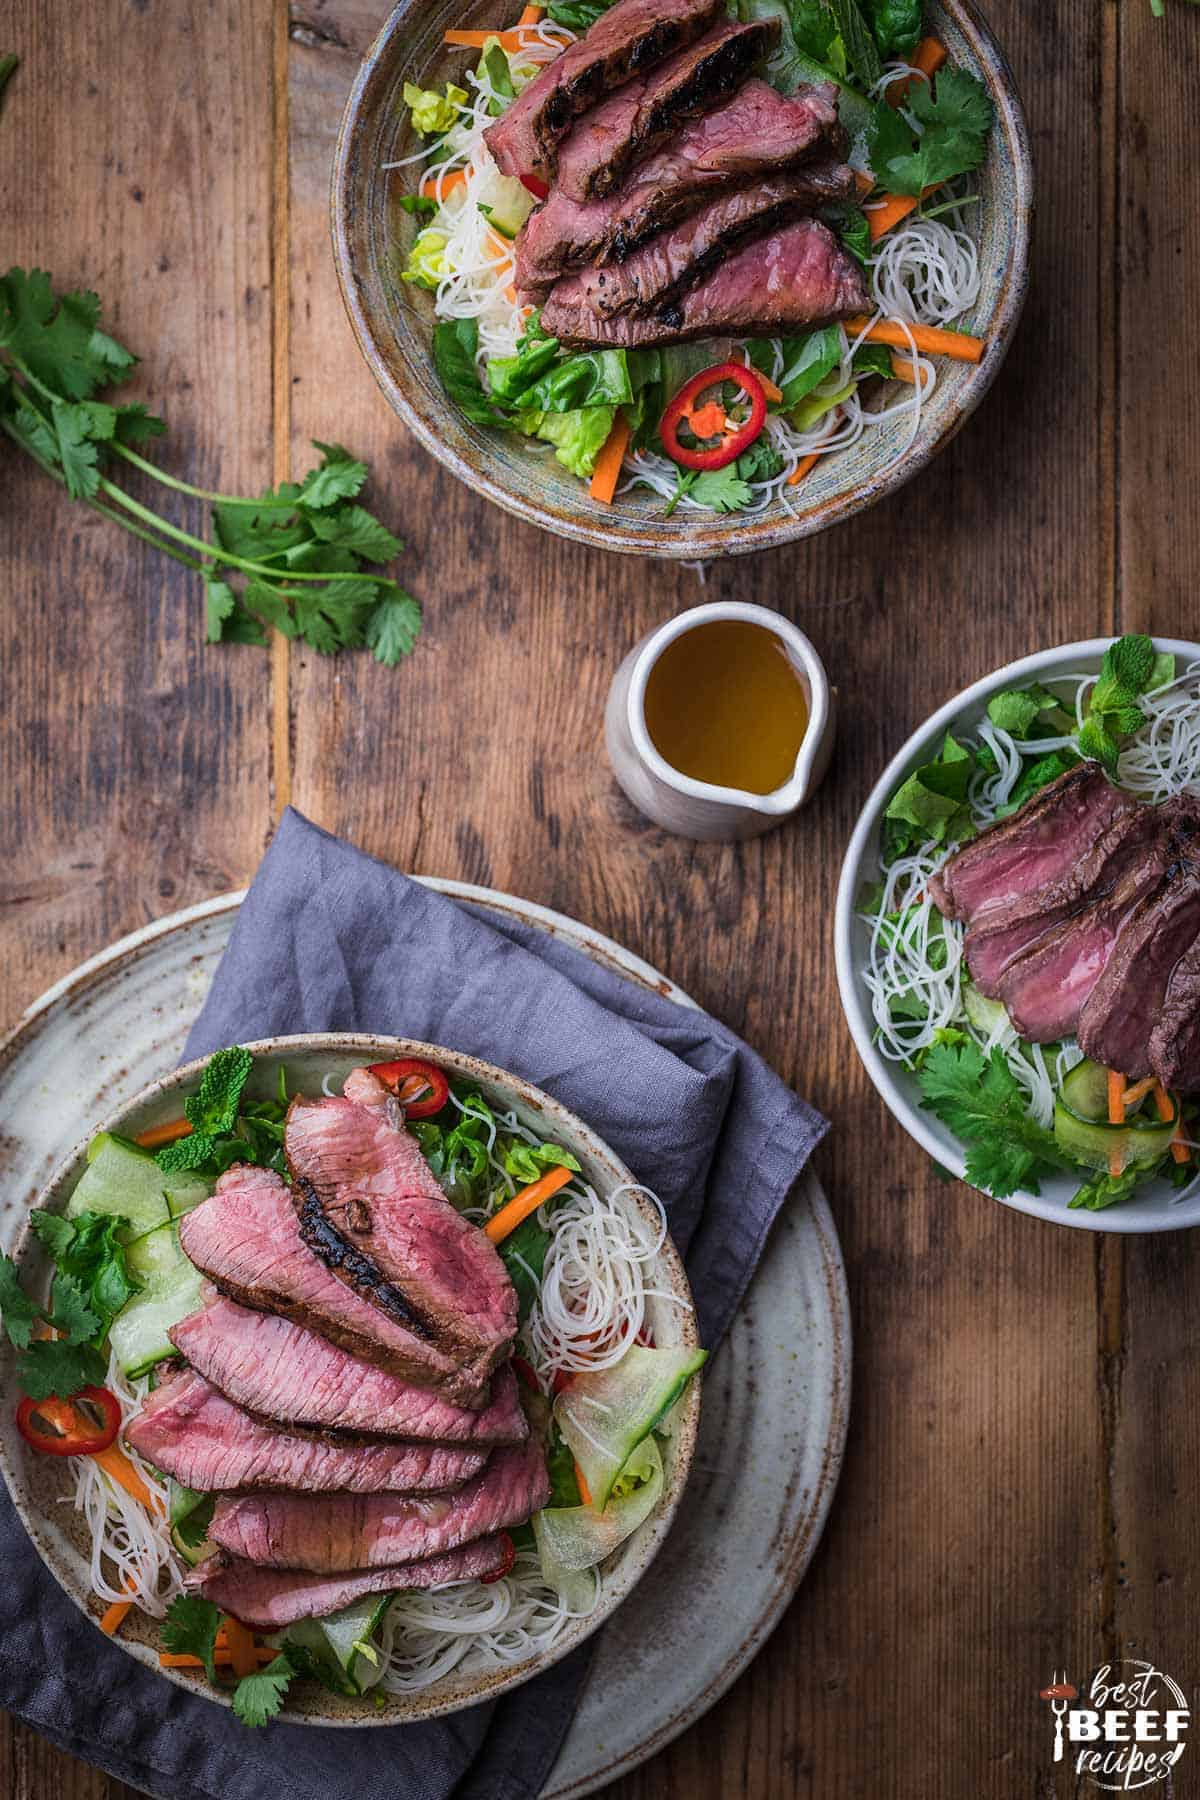 Two large bowls of Vietnamese steak salad and one small bowl